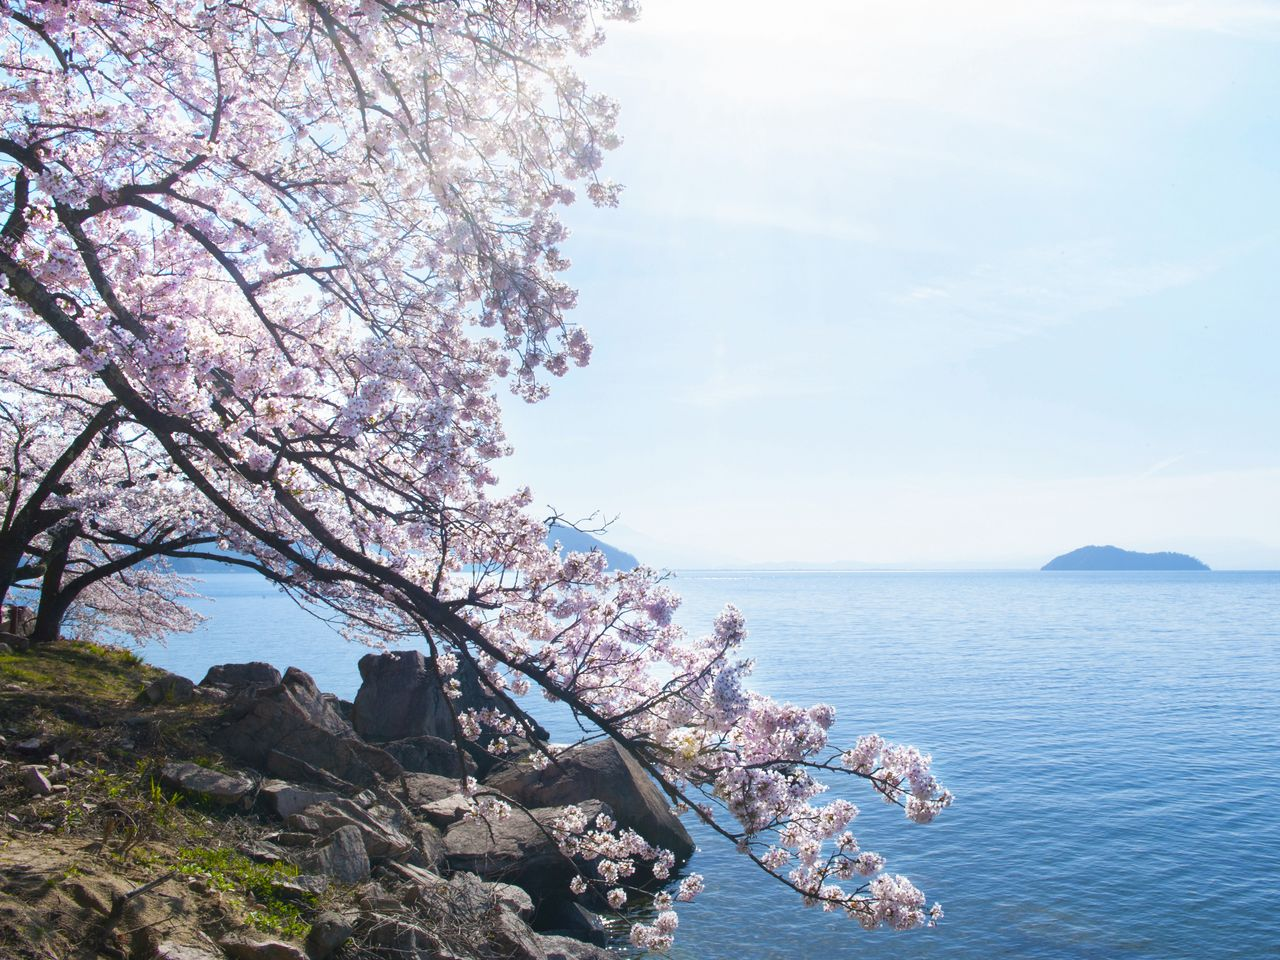 Pretty as a picture: sakura in bloom against rocky outcroppings along the shore at Kaizu Ōsaki. To the right is Chikubu Island.